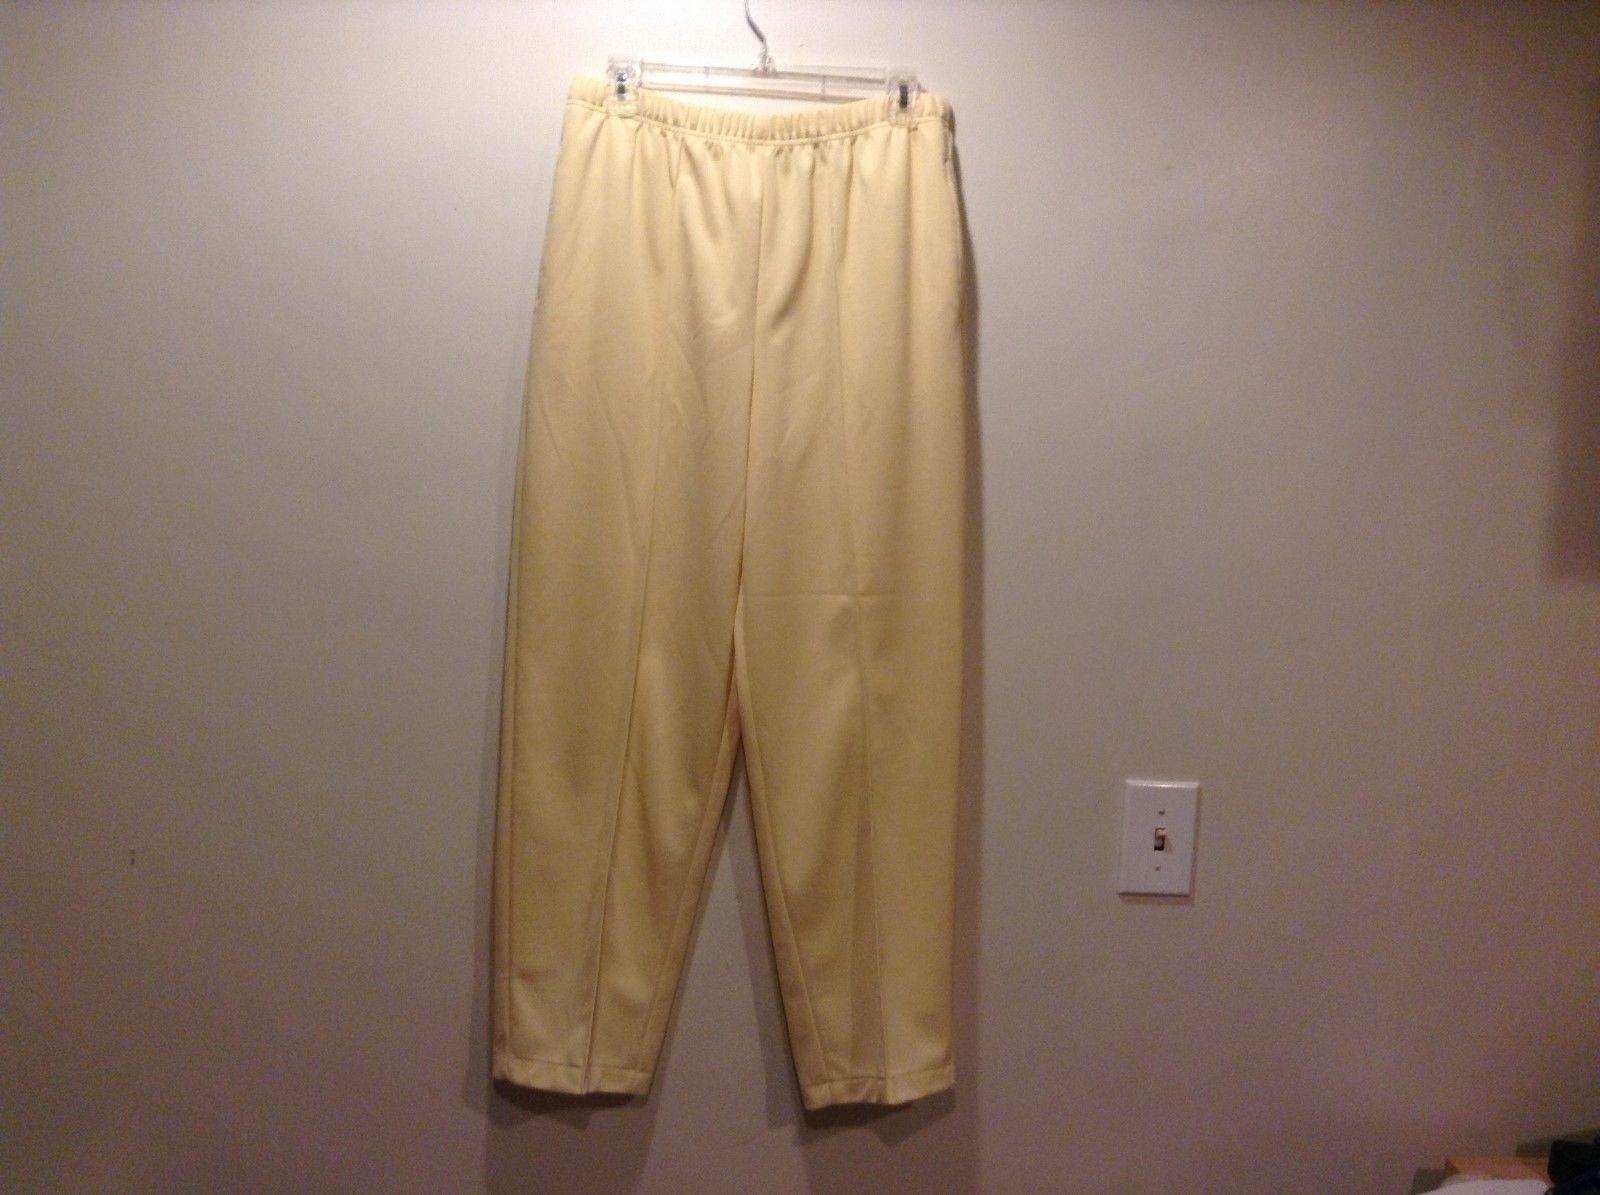 Ladies Yellow Pants w Elastic Waist by Blair Sz 12P